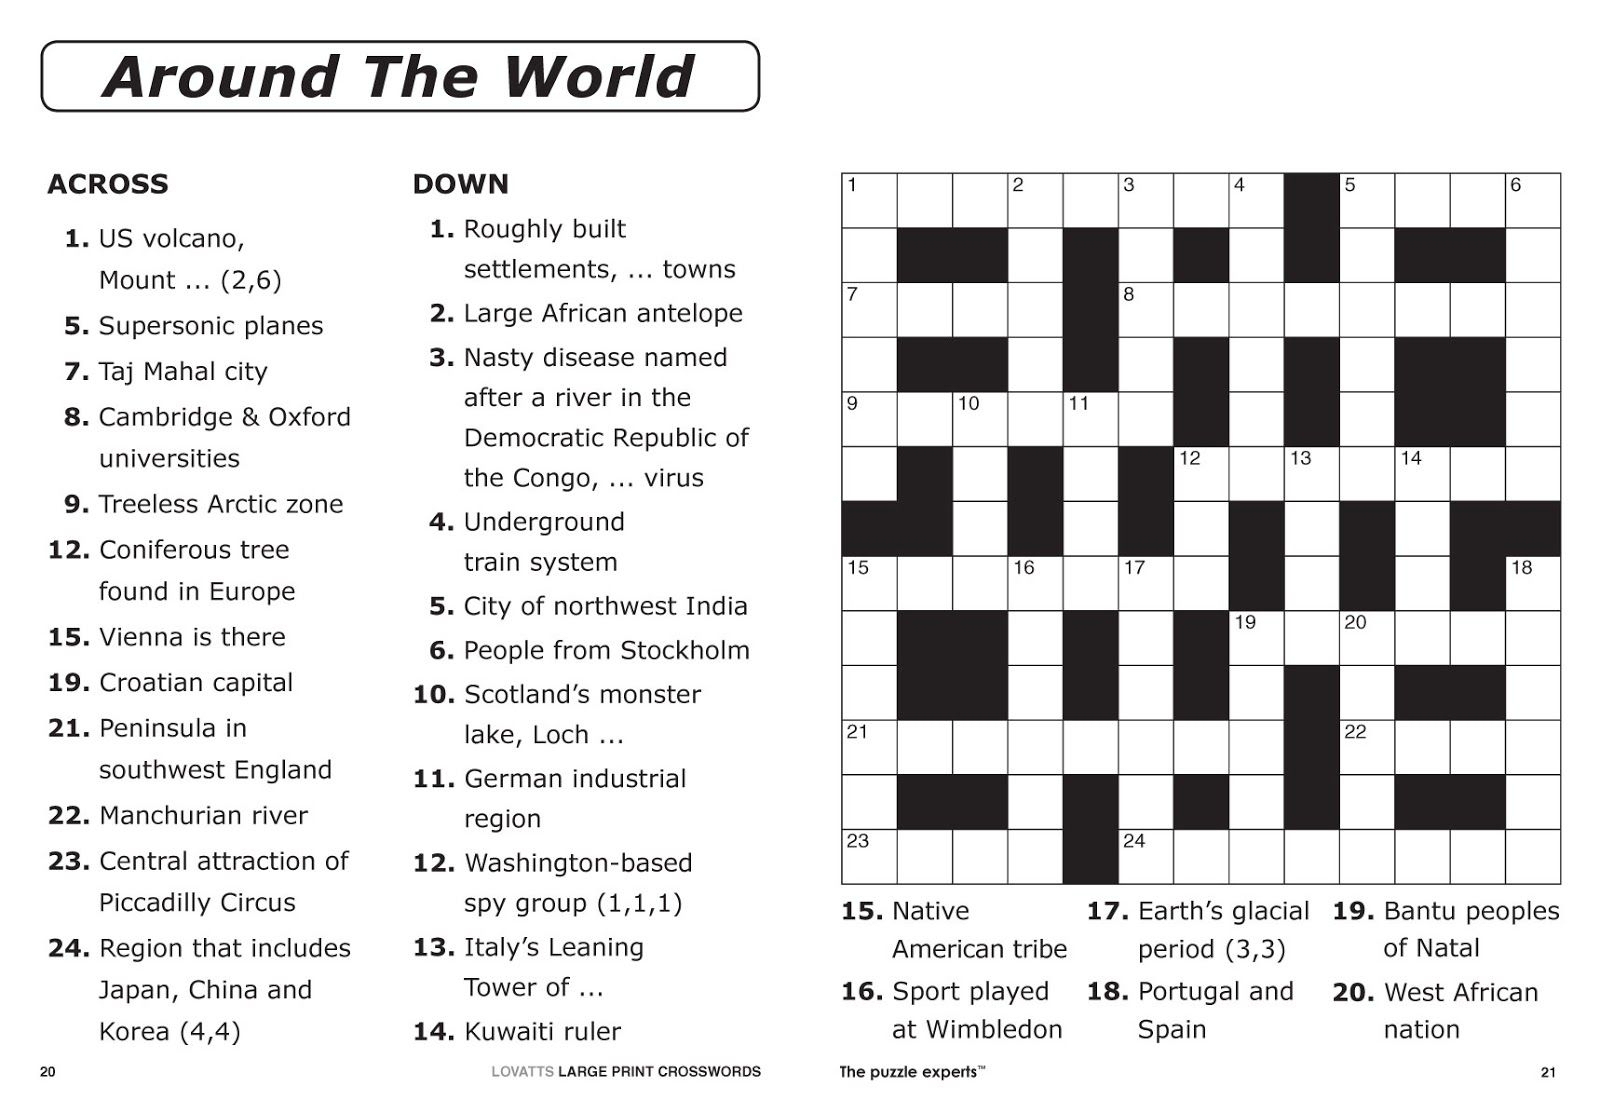 Free Printable Large Print Crossword Puzzles | M3U8 - Printable Crossword Puzzles For Adults Pdf